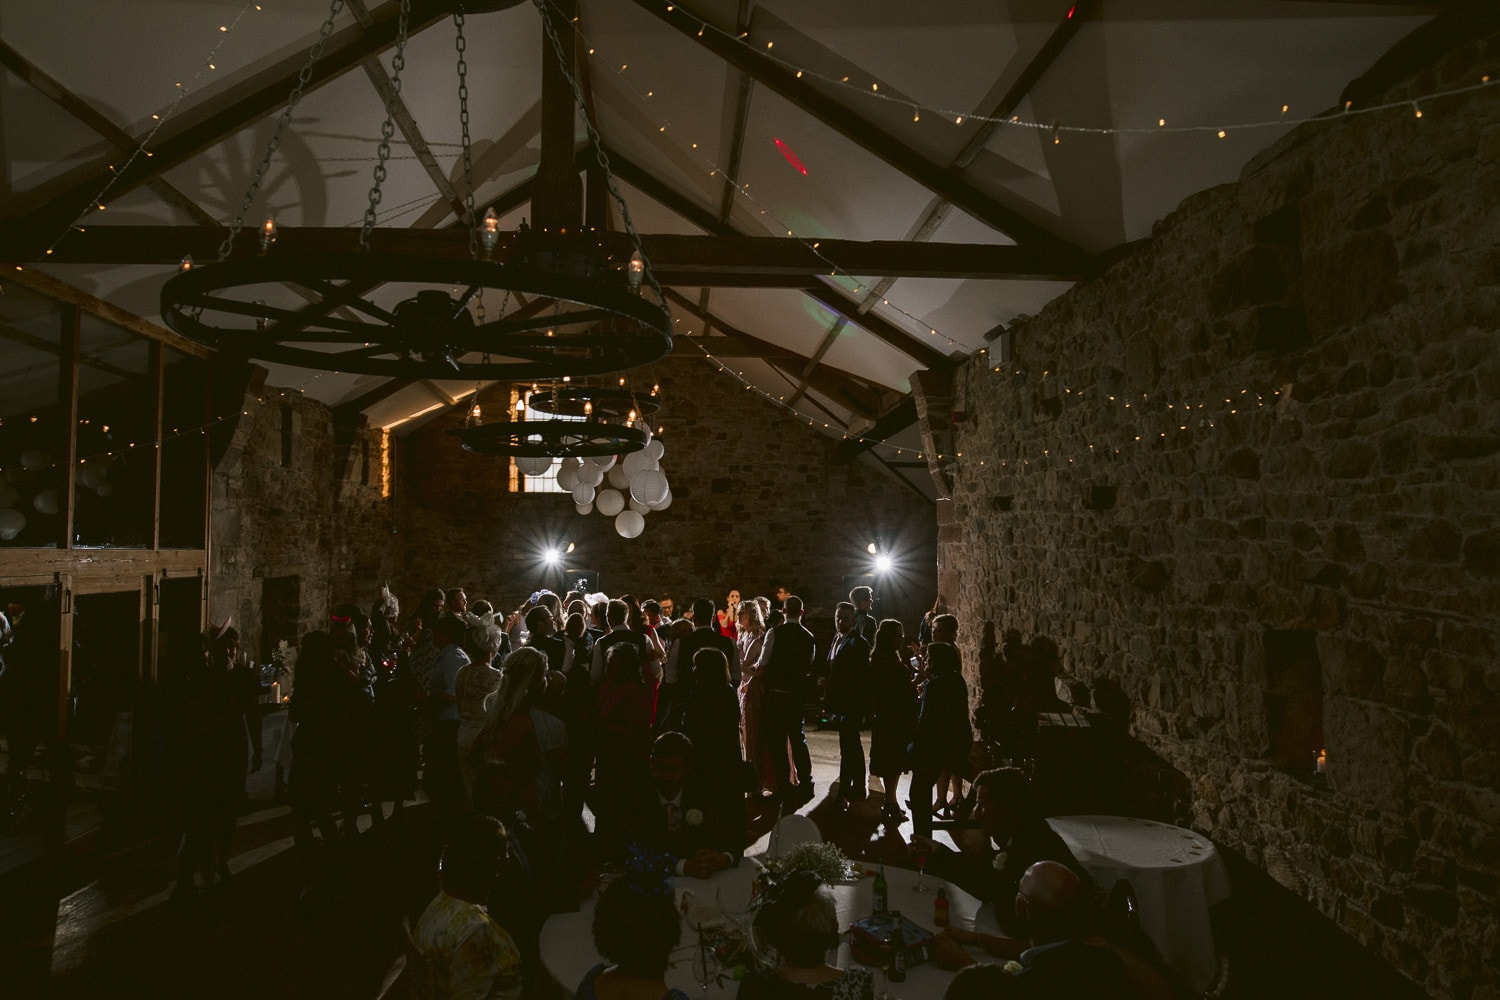 Main Hall Filled With Guests in Low Light Dancing Photography Shooting